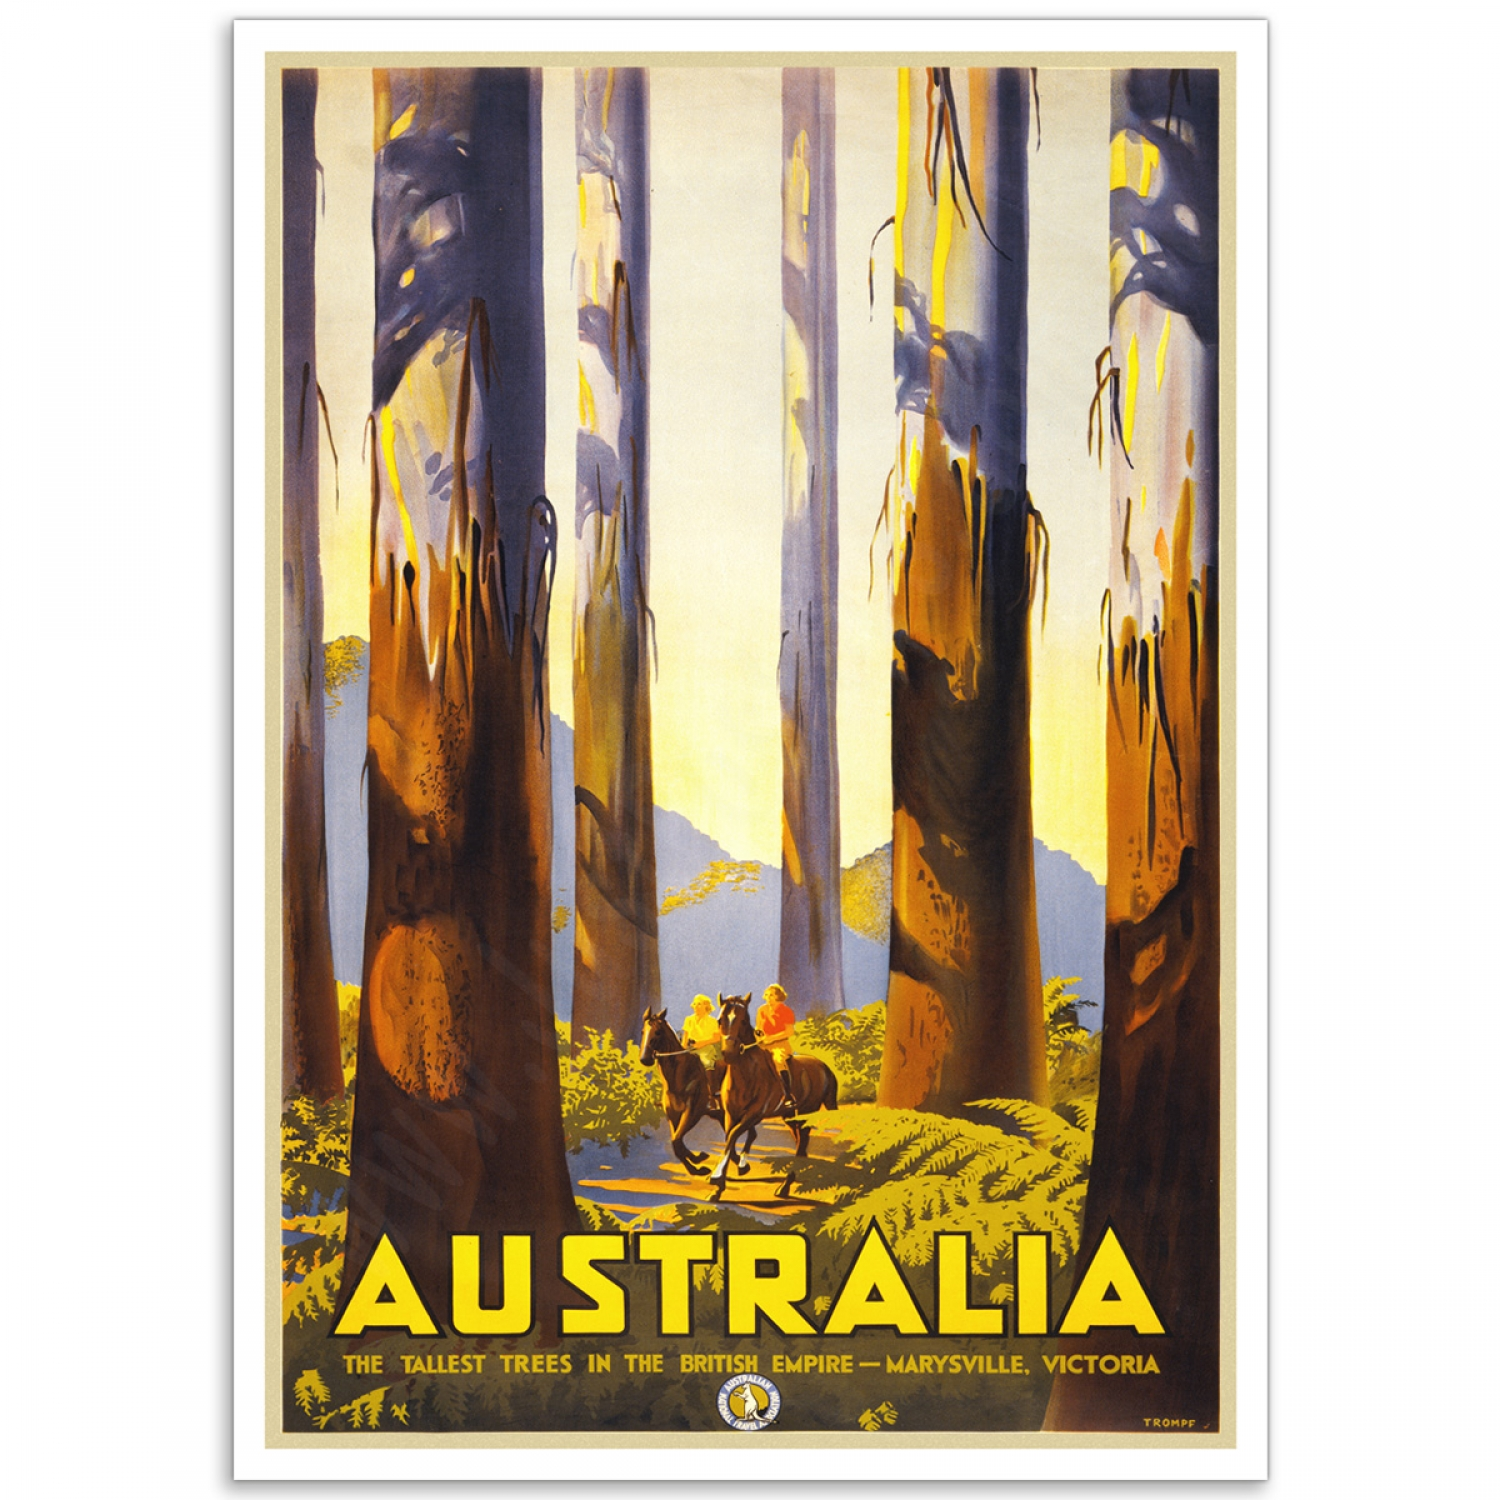 Old Advertising Poster reproduction Victoria